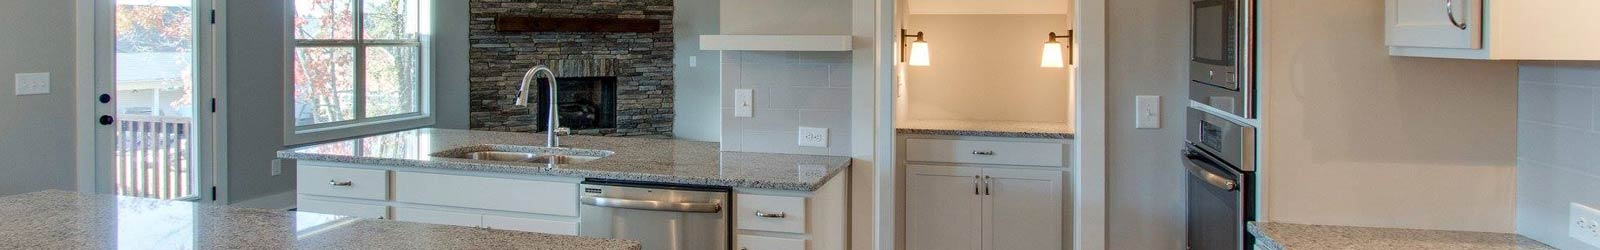 header_tn-tile_kitchen-fireplace.jpg